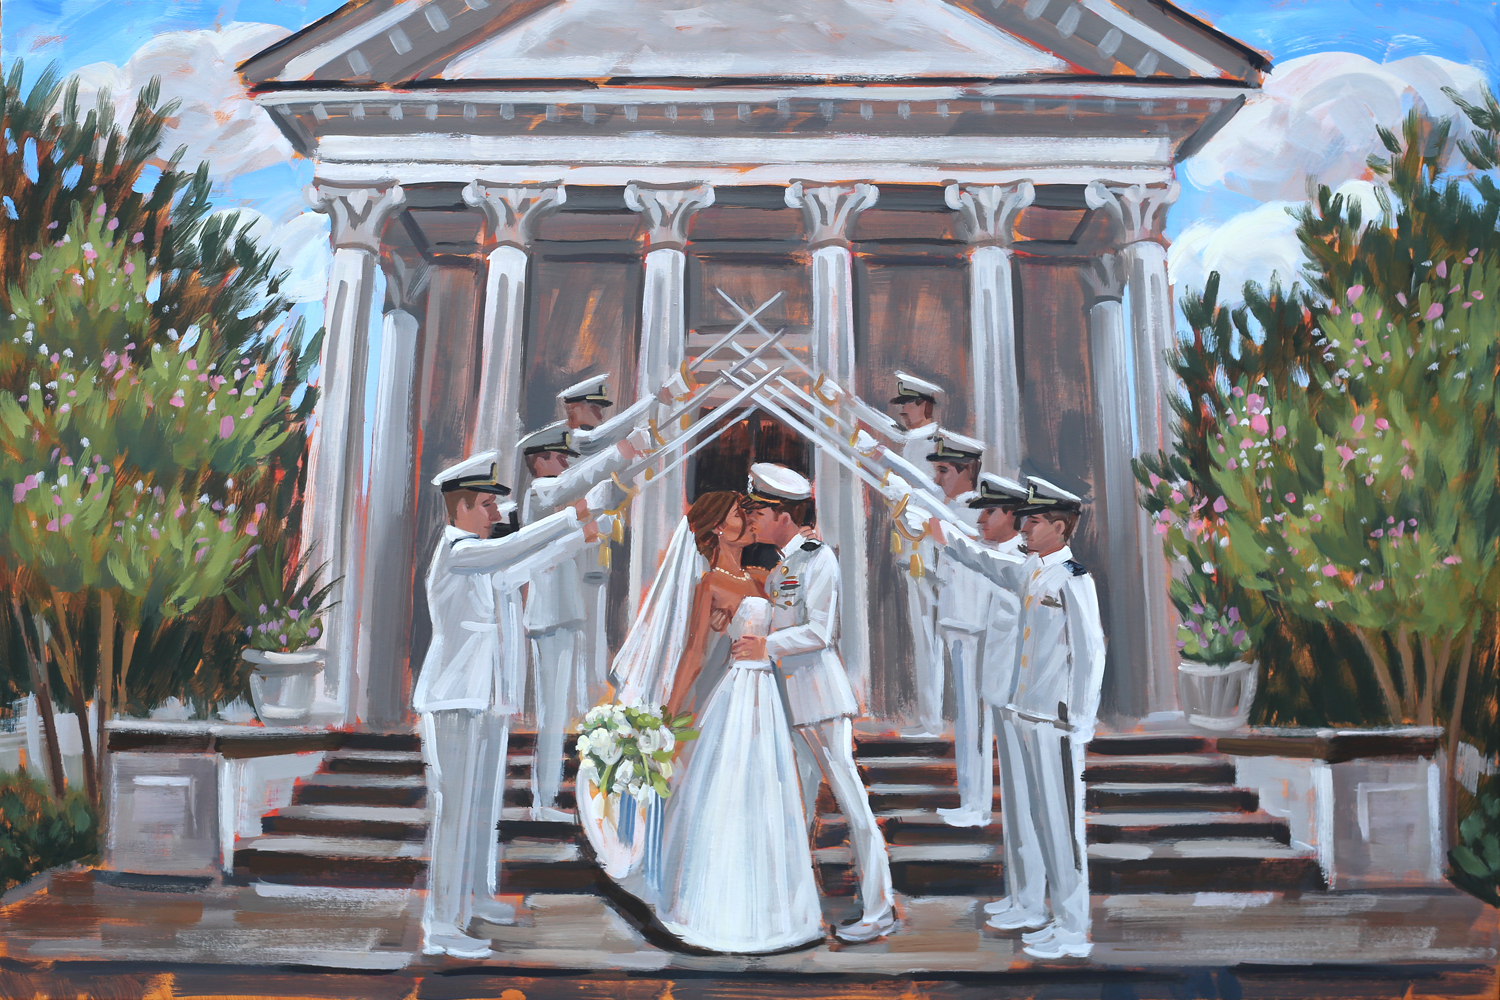 Live wedding painter, Ben Keys, captured Becca + Scott's iconic sword arch moment as they were exiting their ceremony held at Trinity United Methodist Church in downtown Charleston, SC.